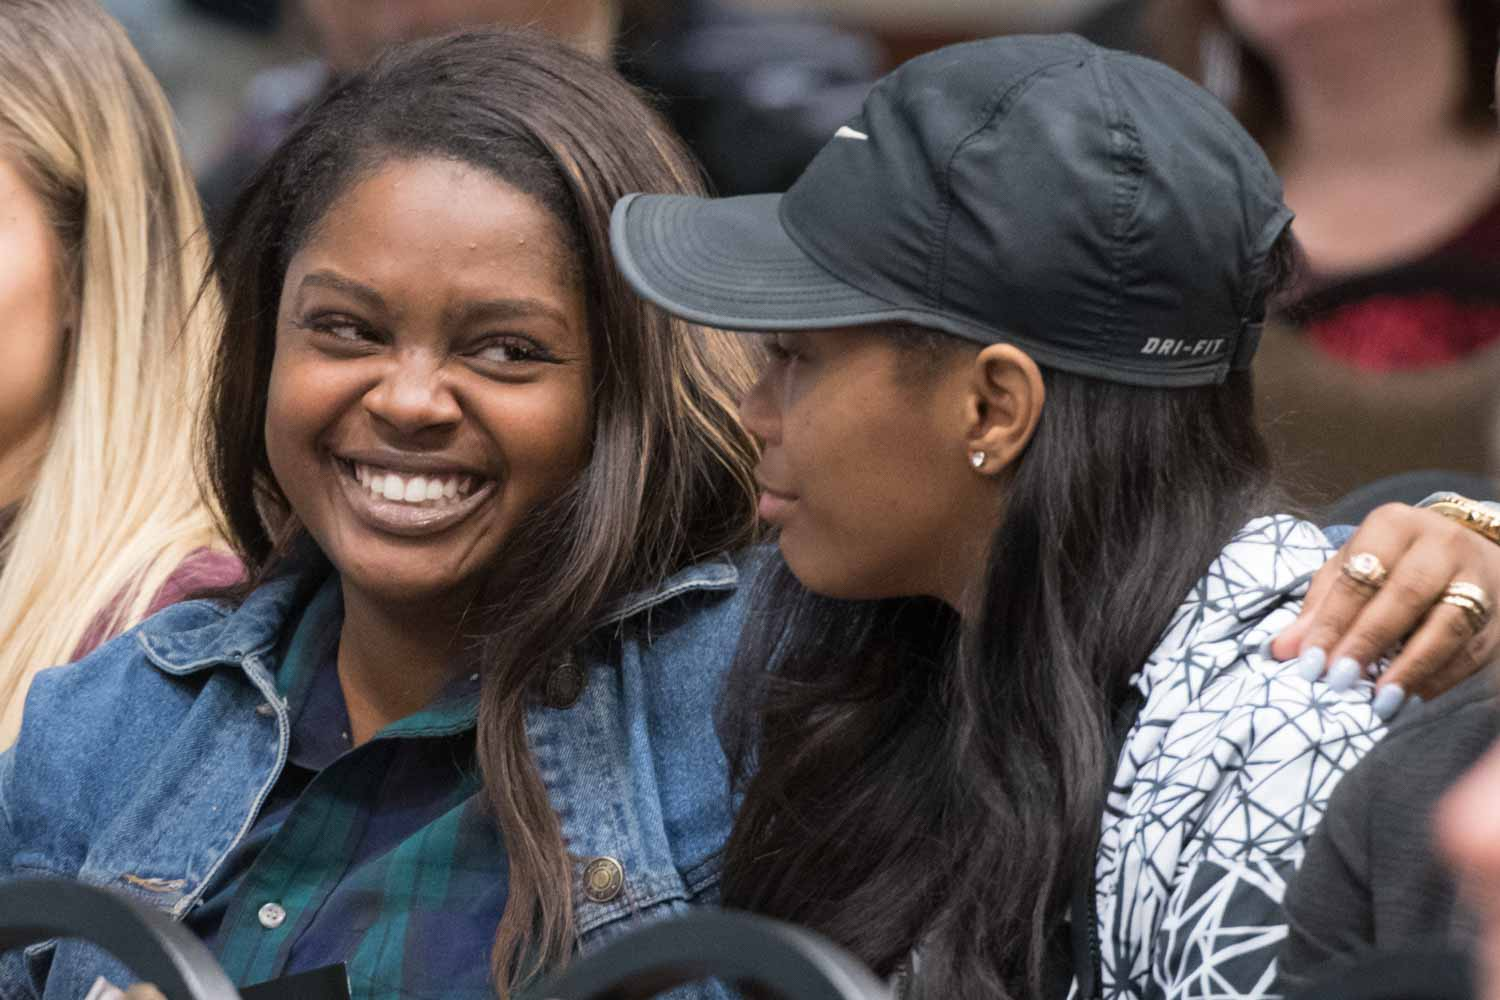 Robbie Hatchett, left, shares a smile with her friend, Raven Smith, who both attended the event in honor of Dariana Byone.